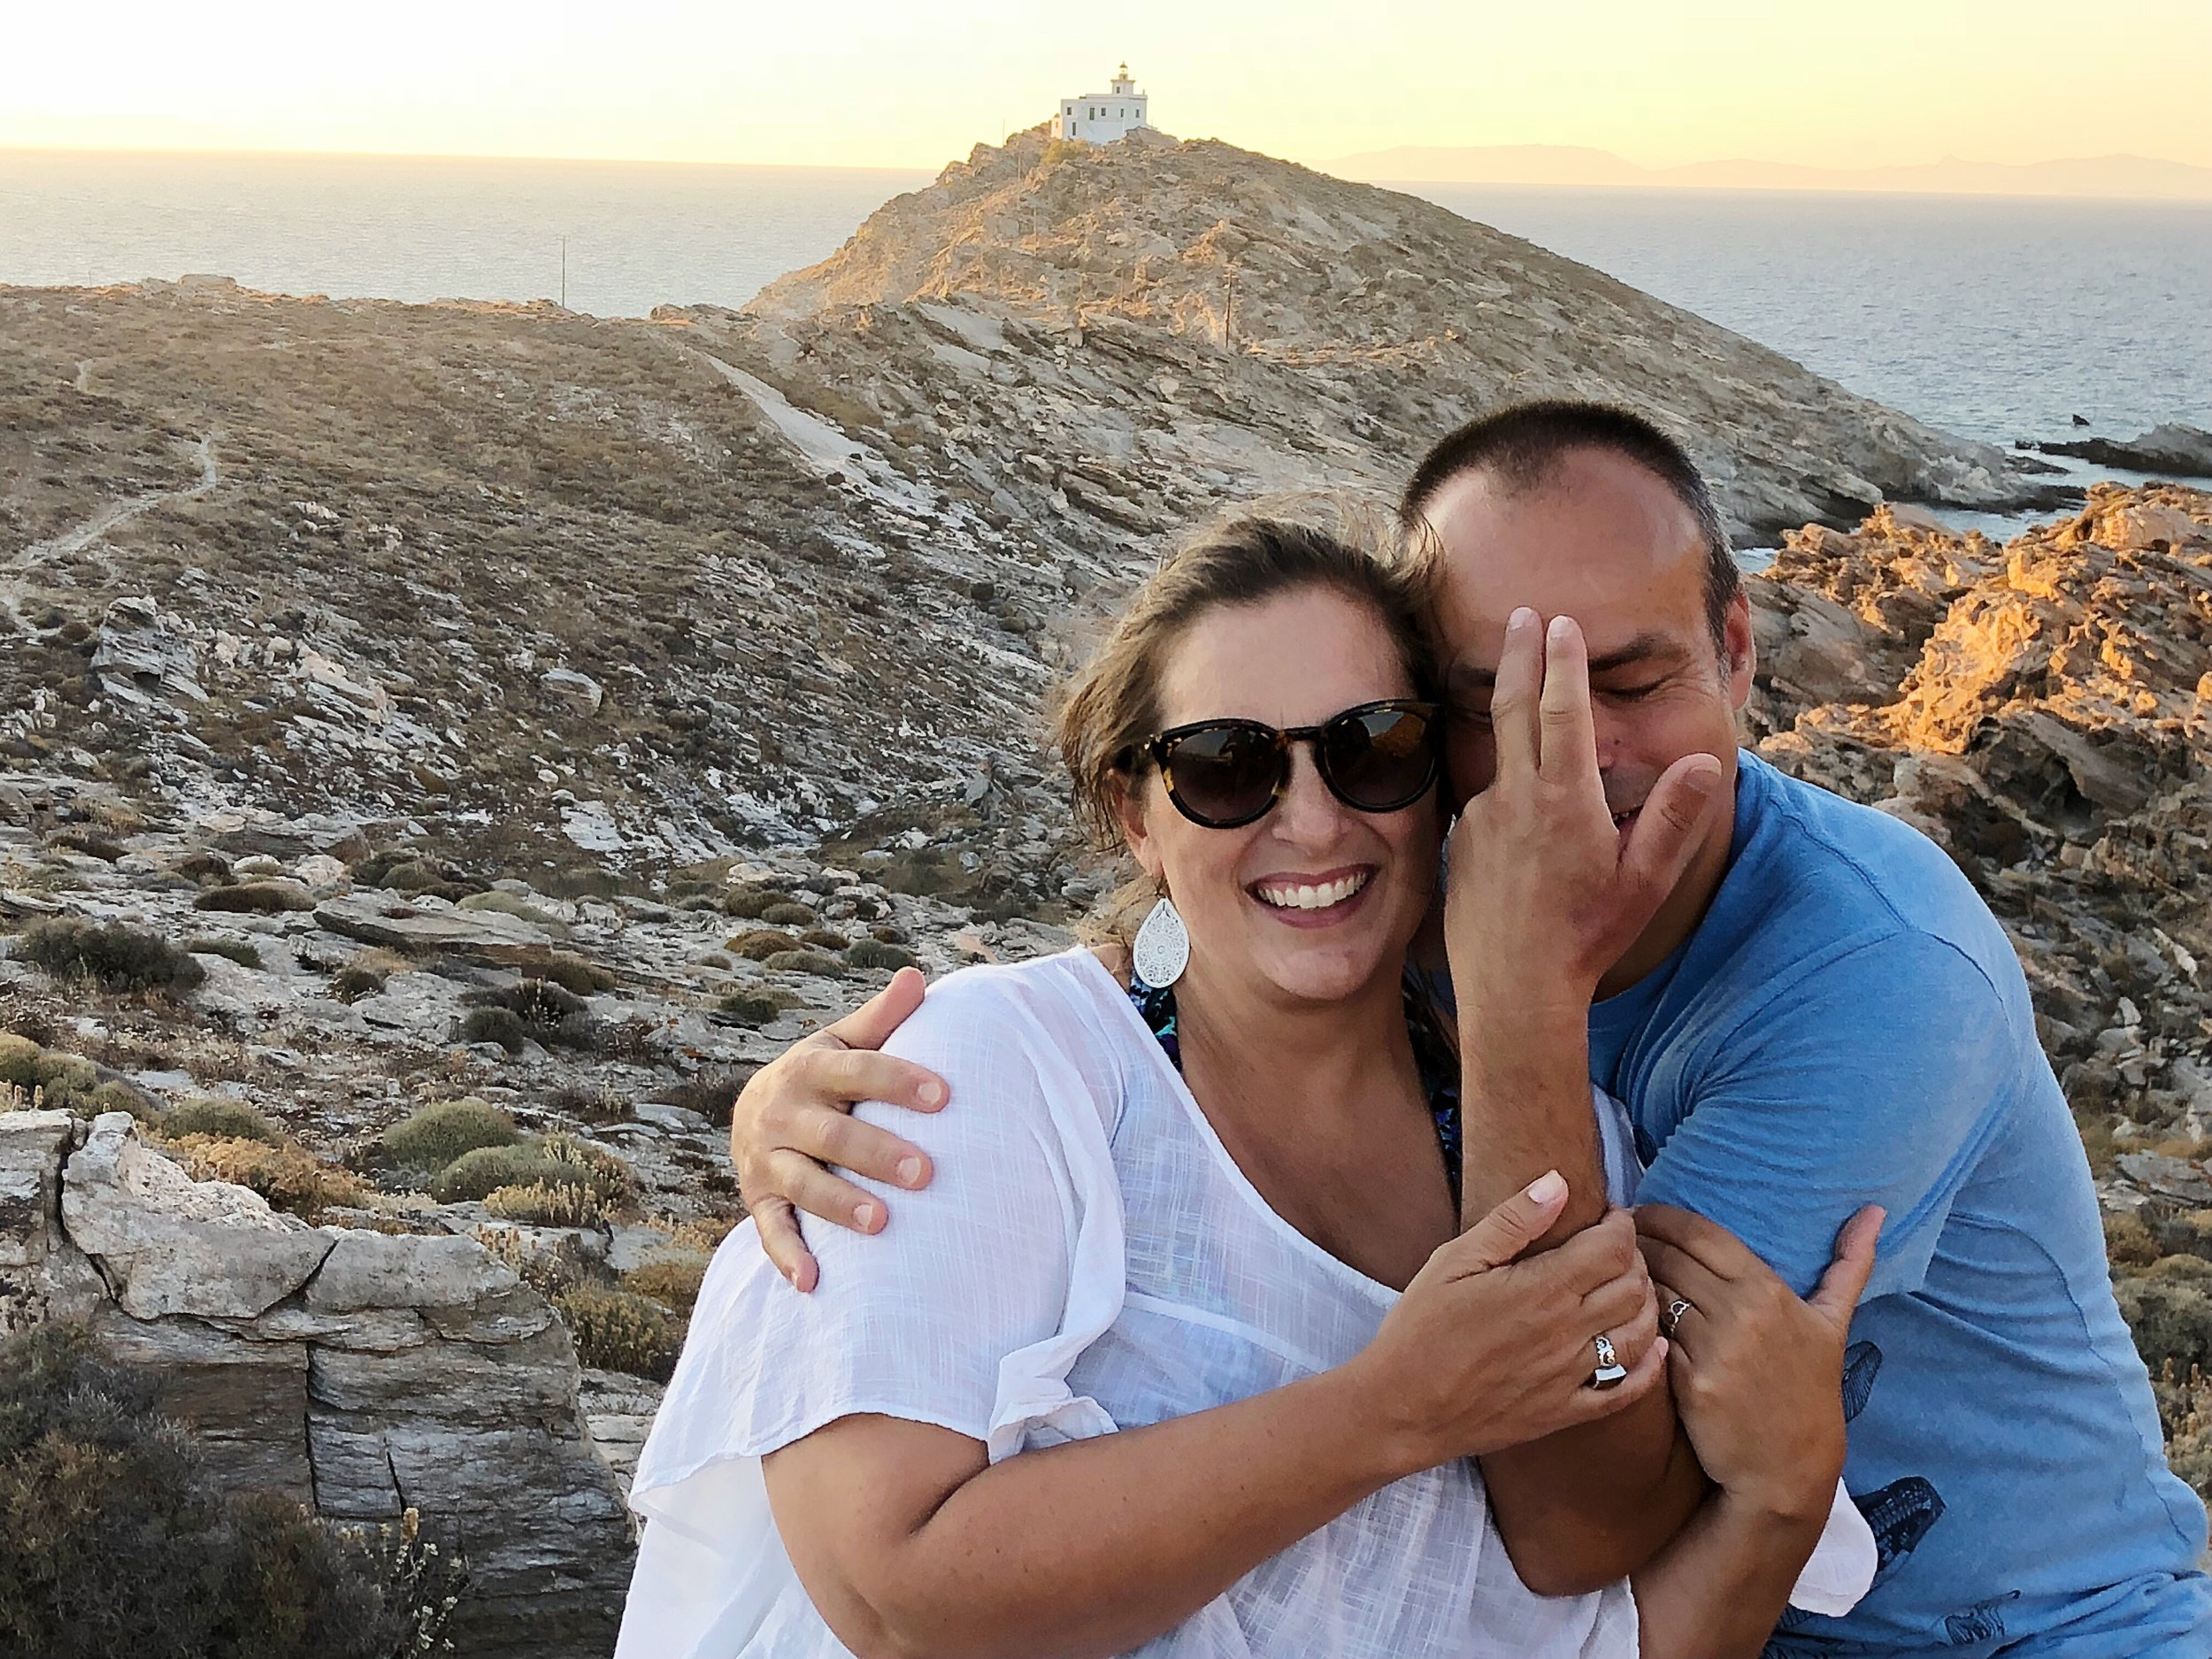 Franck and me goofing off on a mountaintop on the island of Paros, Greece.